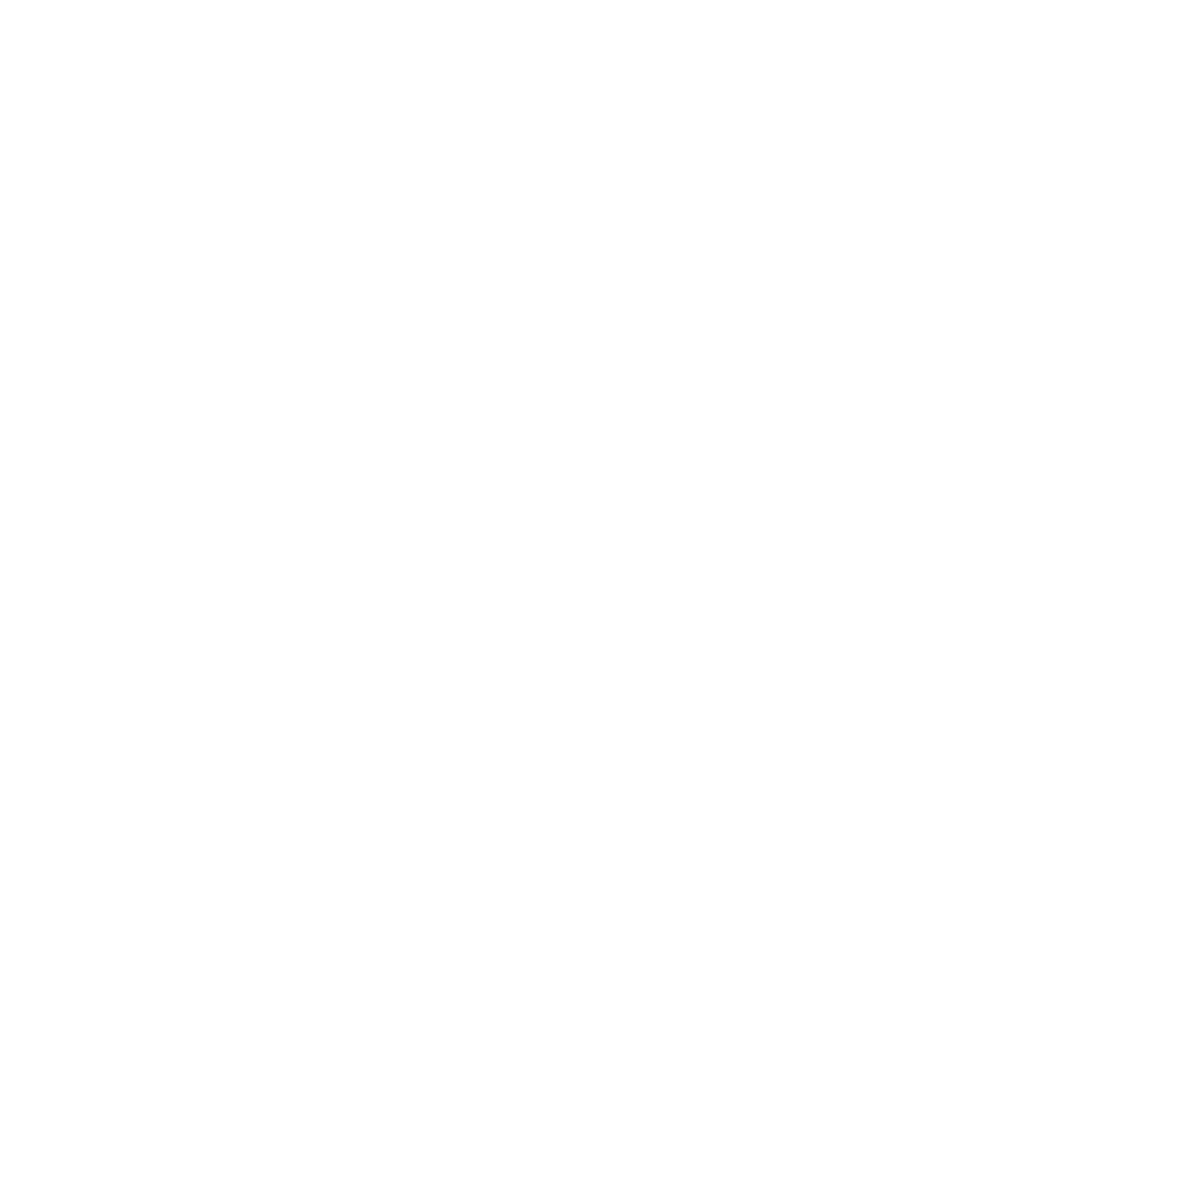 See You at the Summit